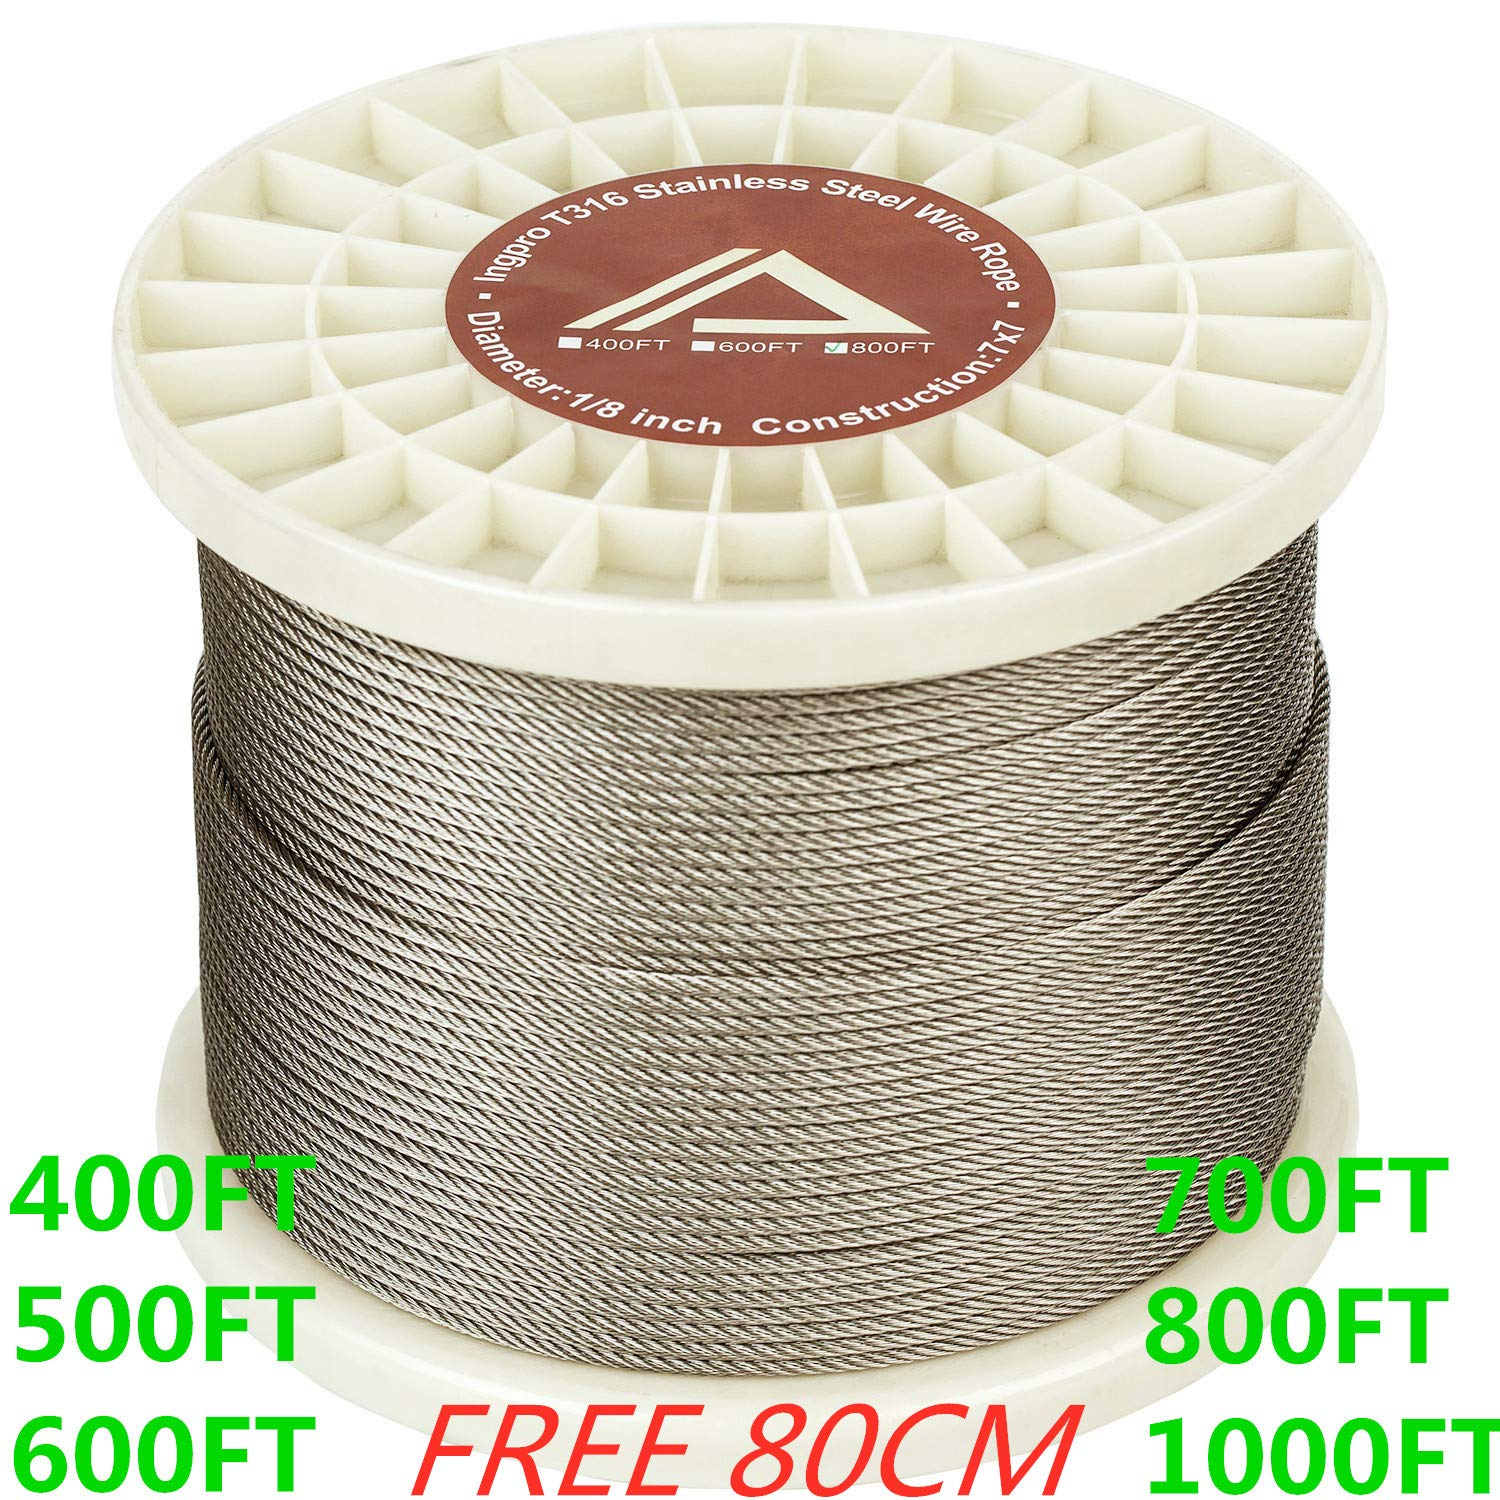 T316 Stainless Steel Cable 1//8 Aircraft Wire Rope for Deck Cable Railing Kit,Corrosion Resistance Grade 7x7 700FT